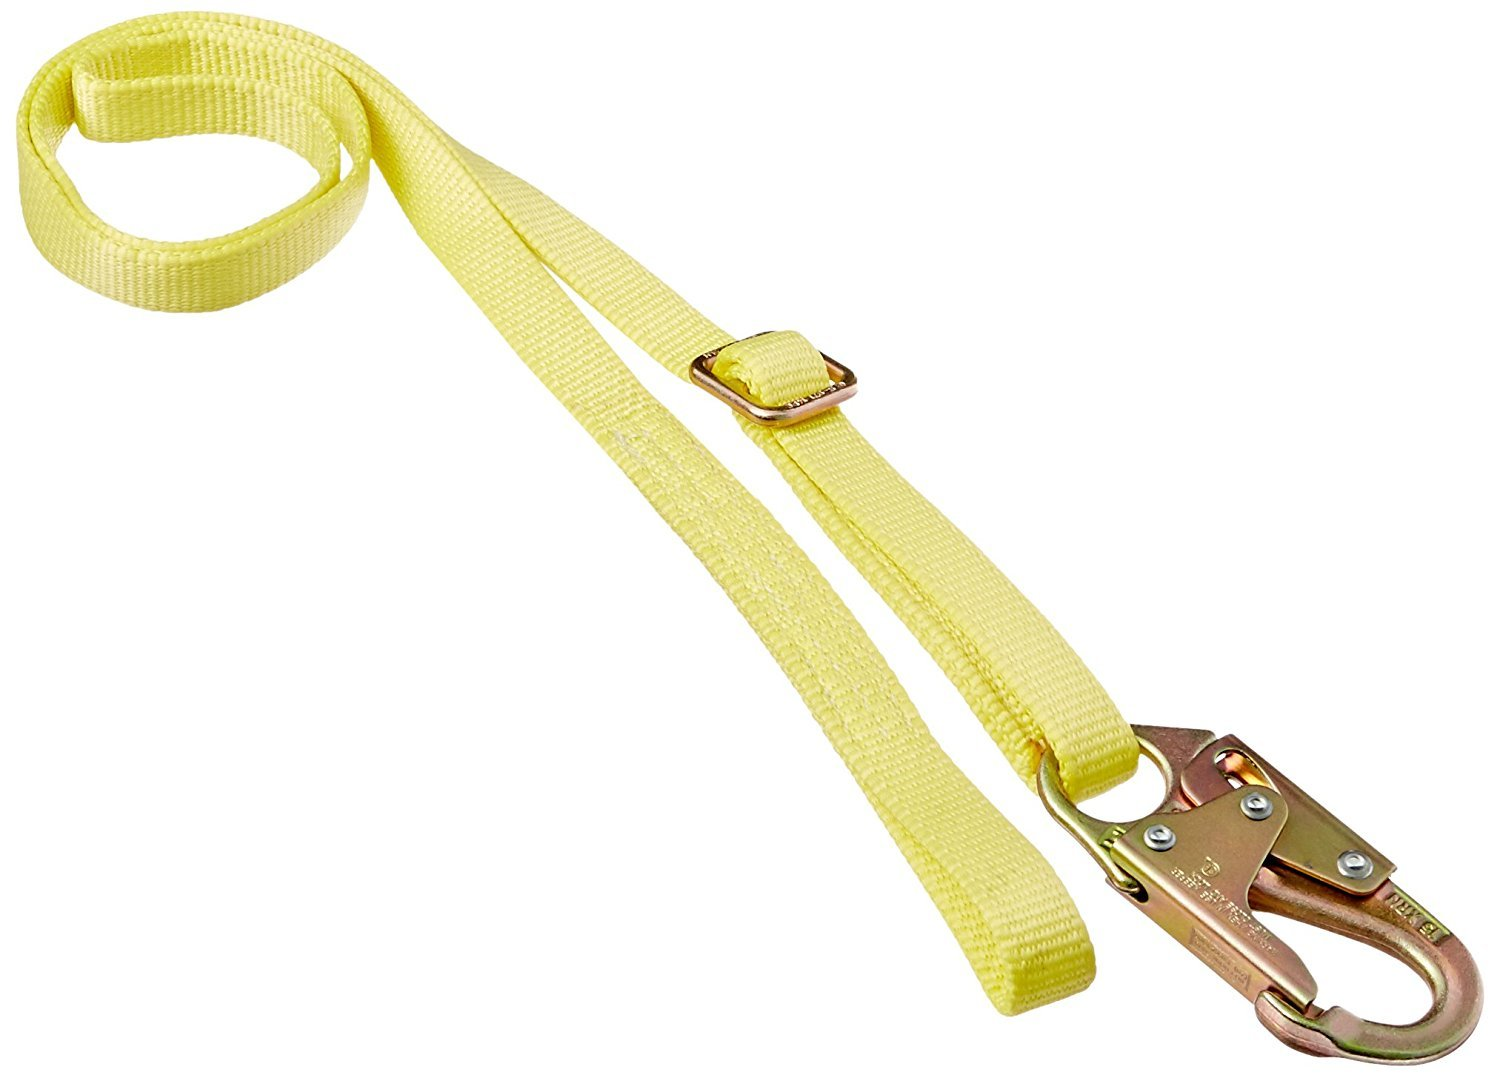 MSA 505217 Web Restraint Lanyard with 36C Steel Snaphook and Web Loop, Nylon Rope, 6' Adjustable Length, ANSI Z359/CSA Z259 Standard